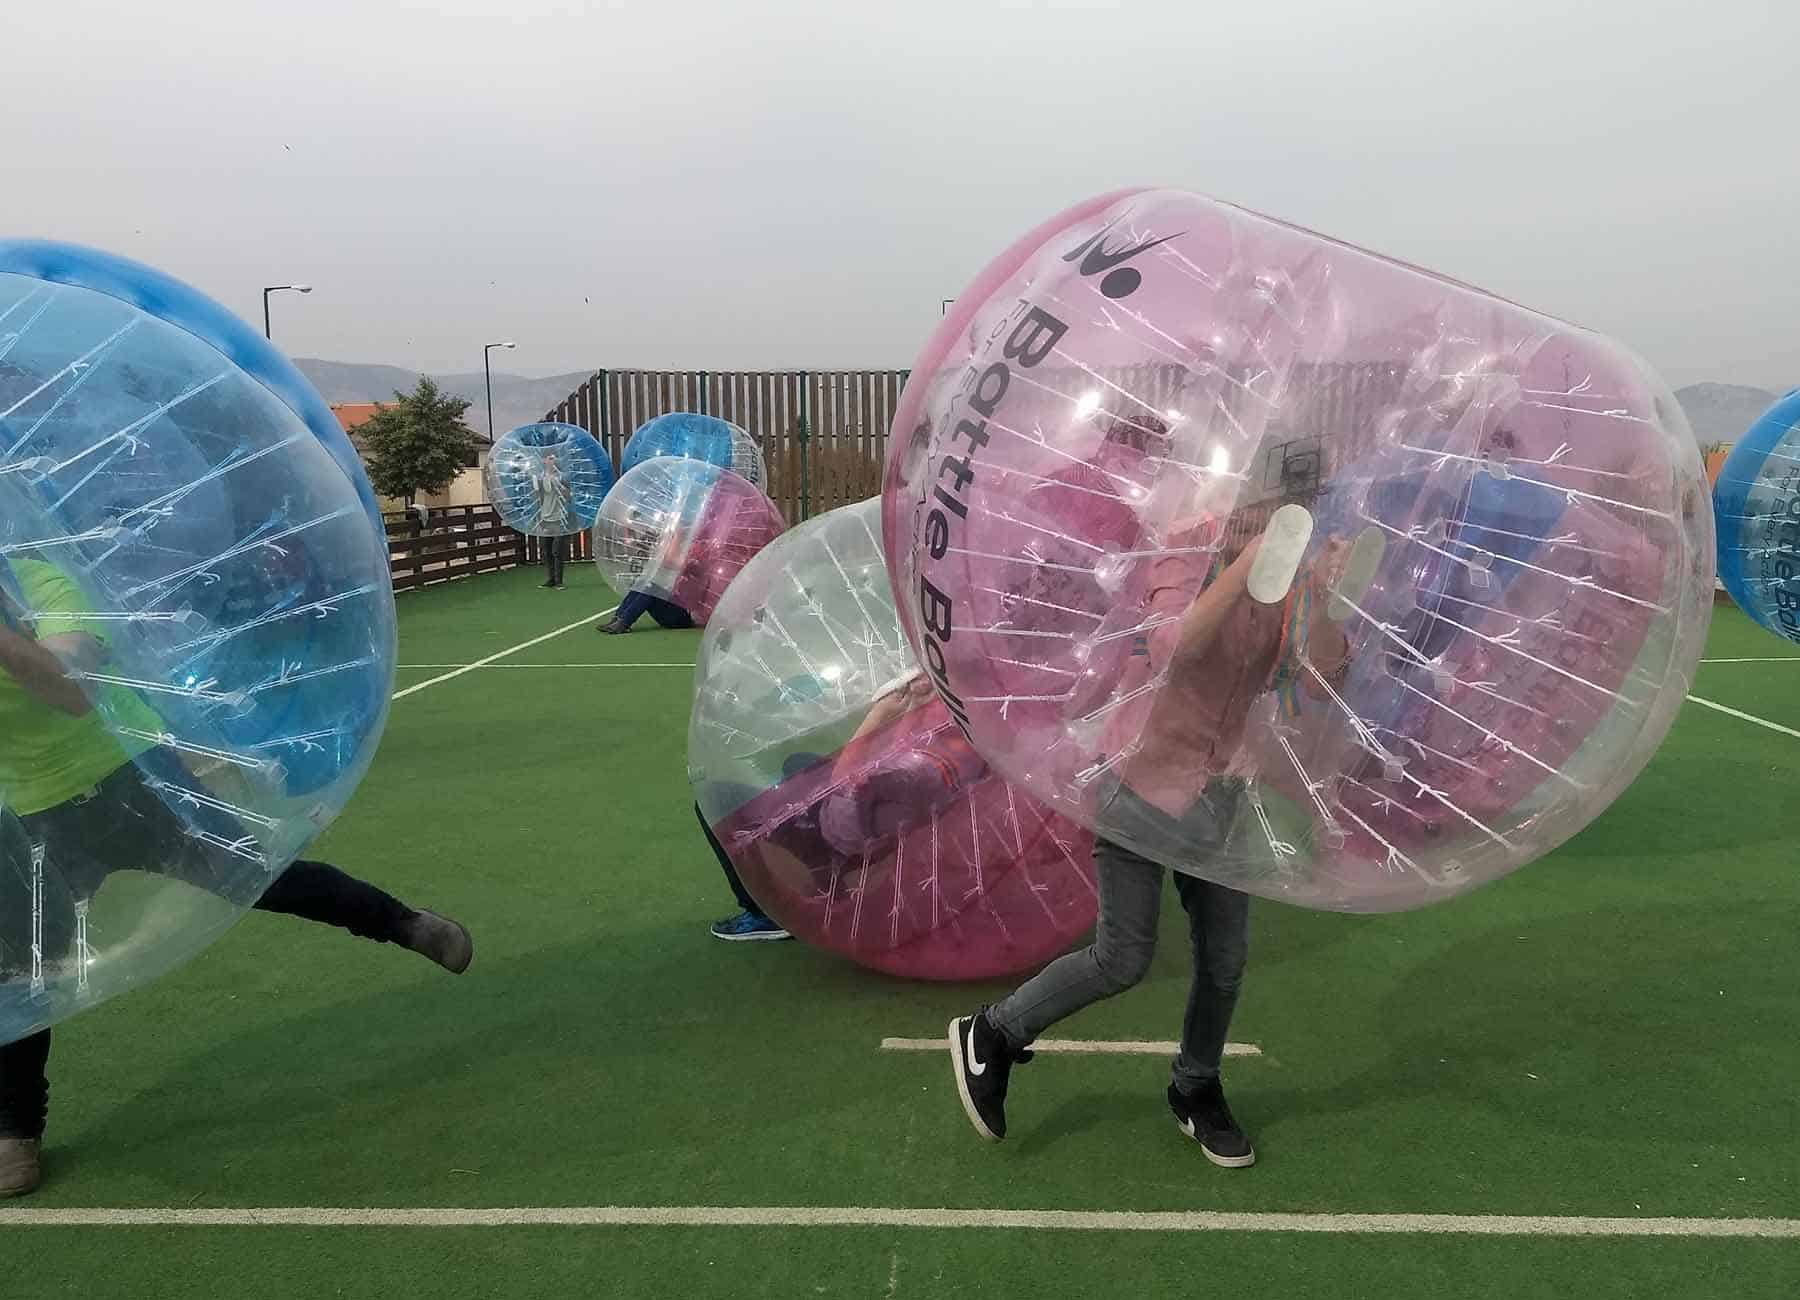 פעילות Bubbleball ברפטינג נהר הירדן